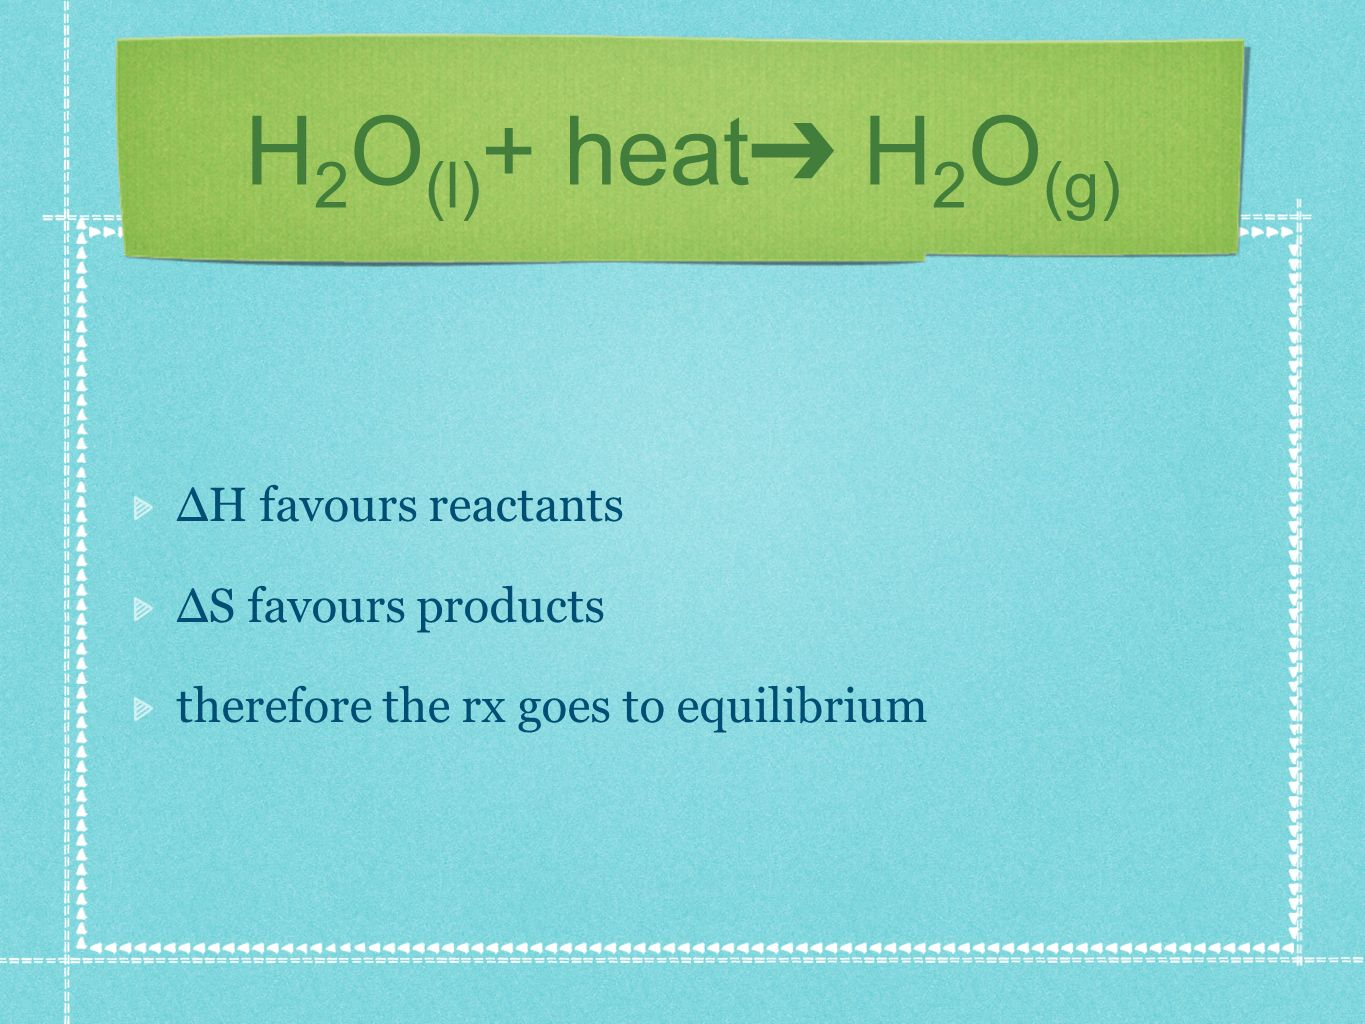 H 2 O (l) + heat H 2 O (g) H favours reactants S favours products therefore the rx goes to equilibrium